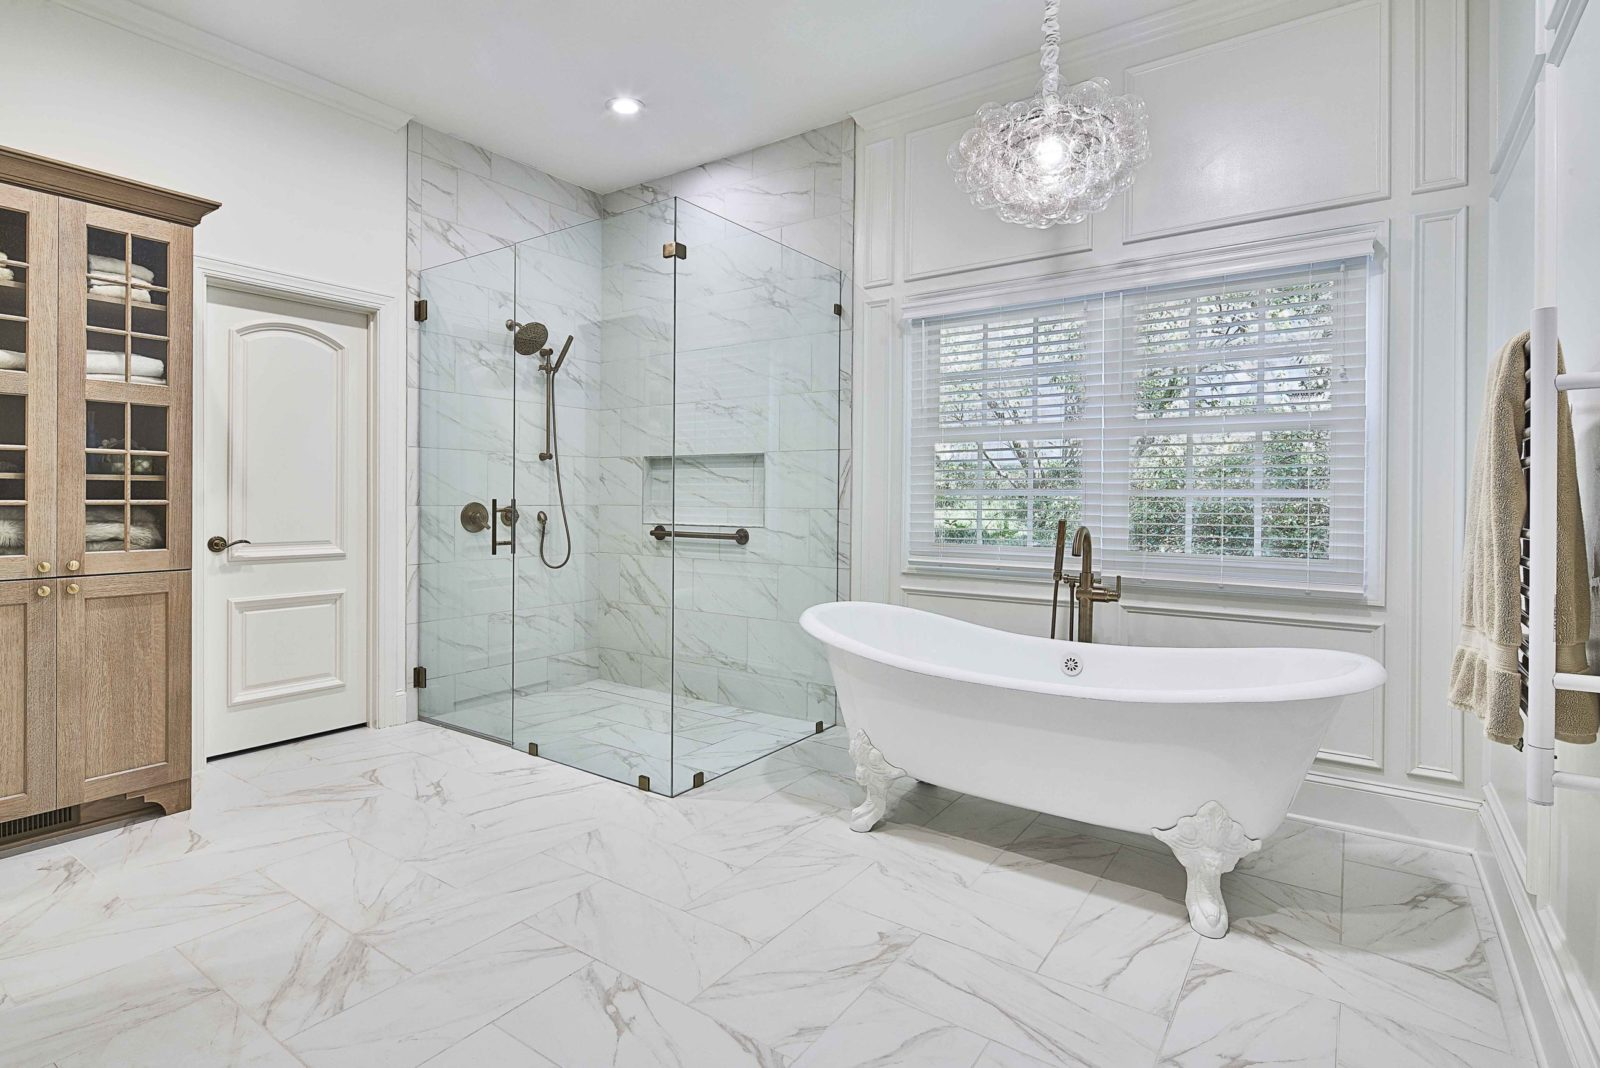 bathroom-remodel-revision-design-curbless-shower-and-clawfoot-tub